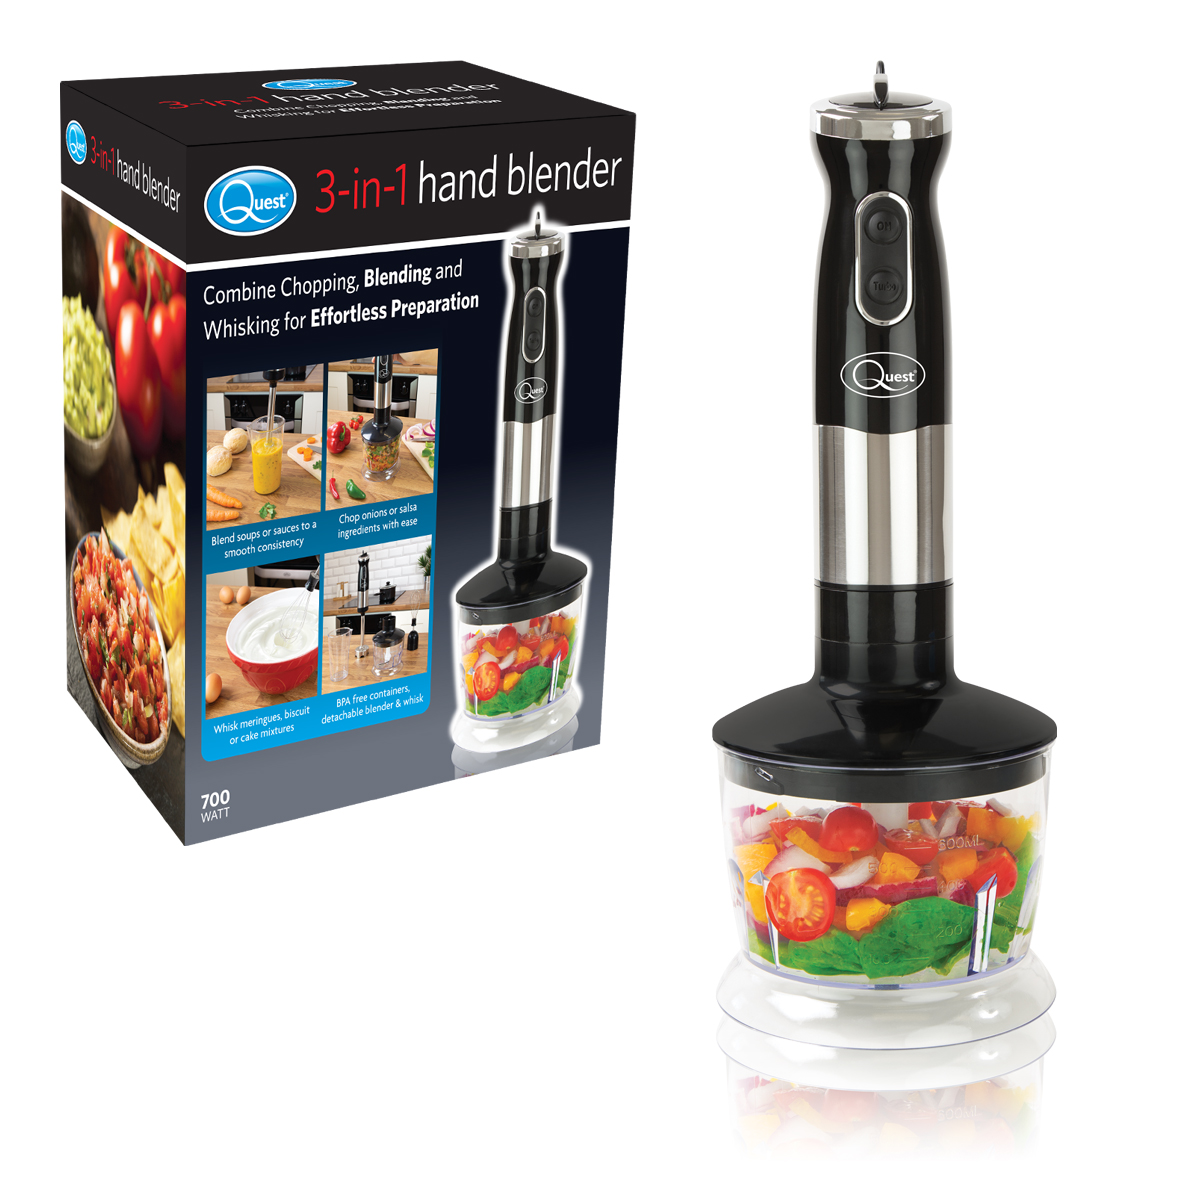 3-in-1 Hand Blender - Combines Chopping, Blending and Whisking. Simply choose the speed you require, including turbo pulse, to blend soups to a smooth consistency, chop ingredients with ease and whisking meringues and cake mixtures.